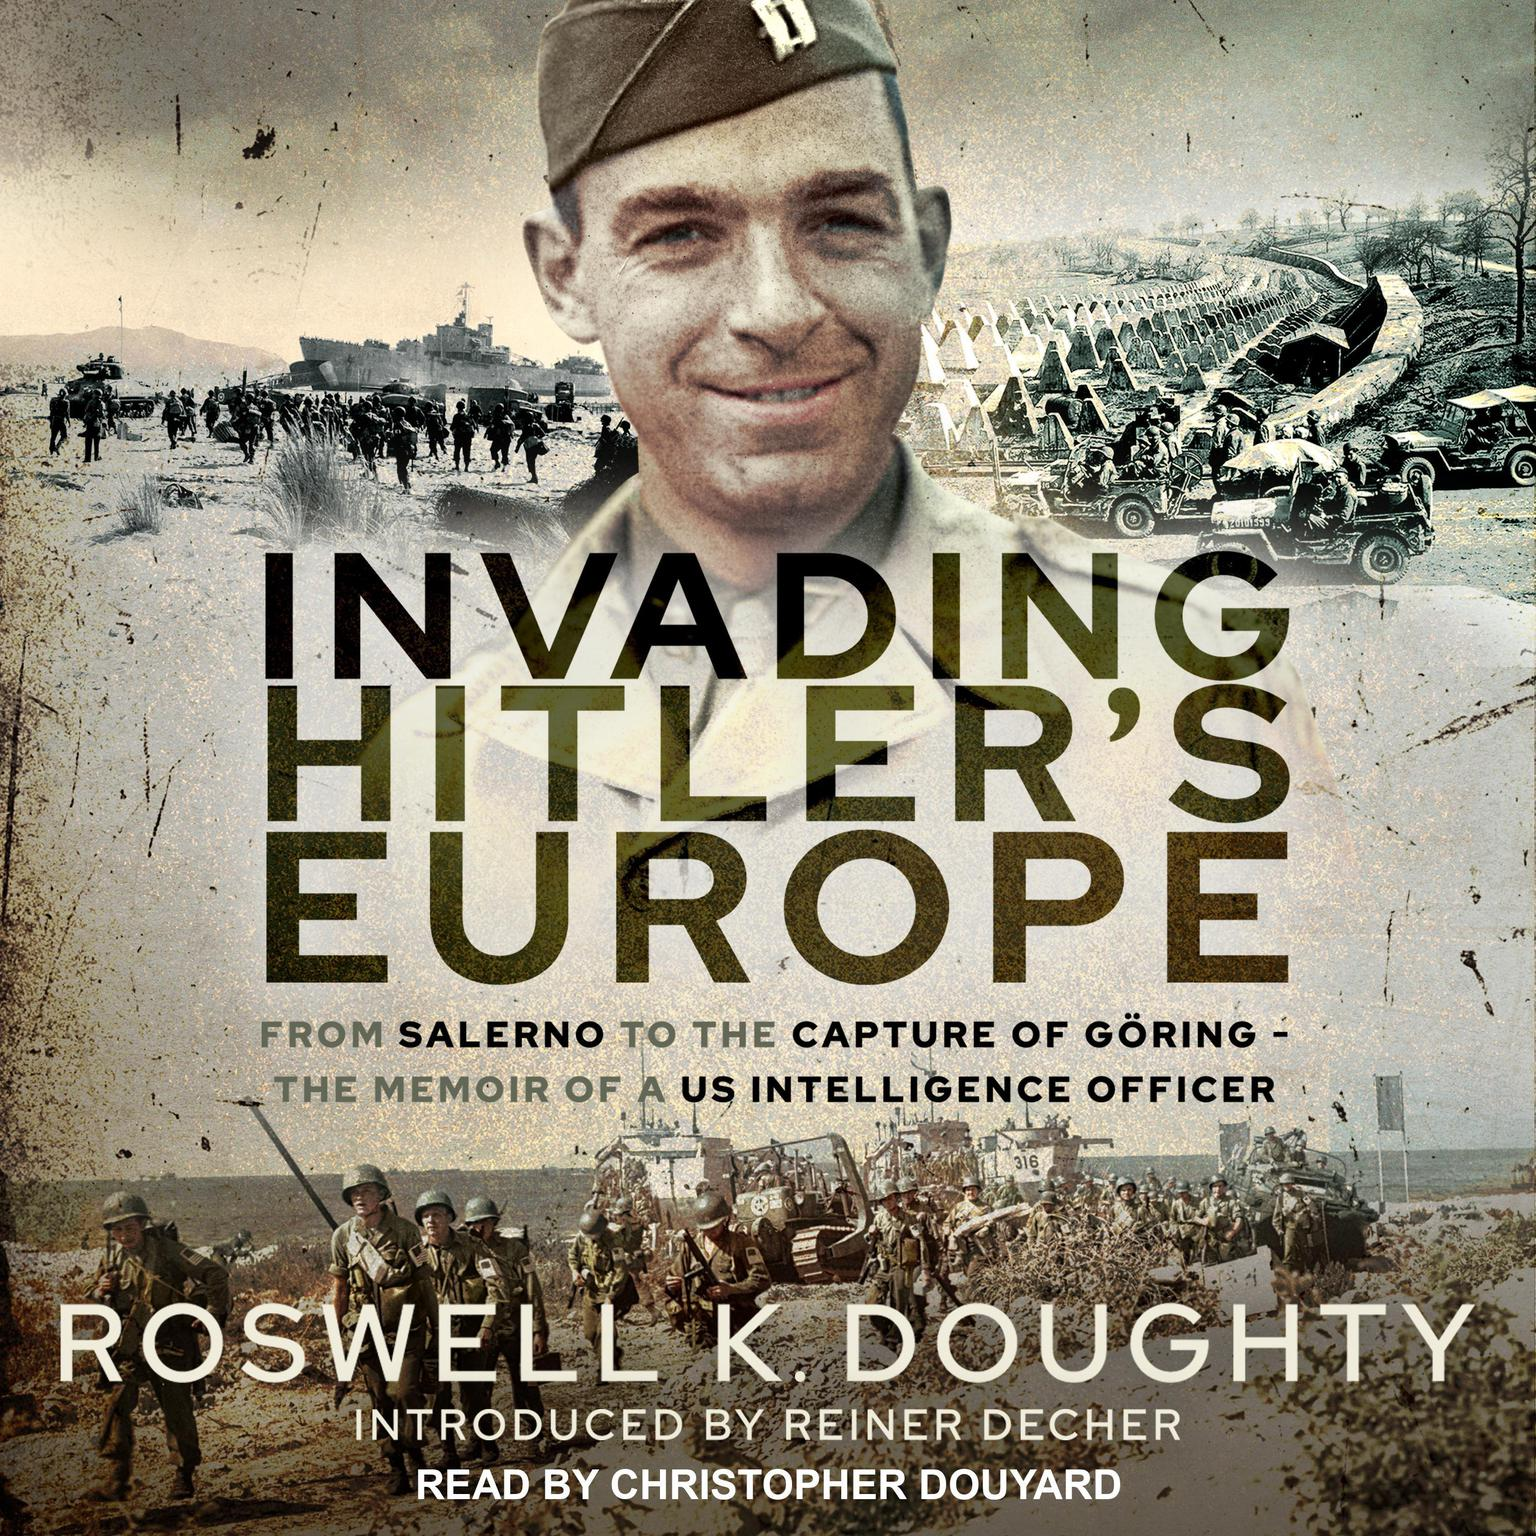 Invading Hitlers Europe: From Salerno to the Capture of Göring - the Memoir of a Us Intelligence Officer Audiobook, by Roswell K. Doughty